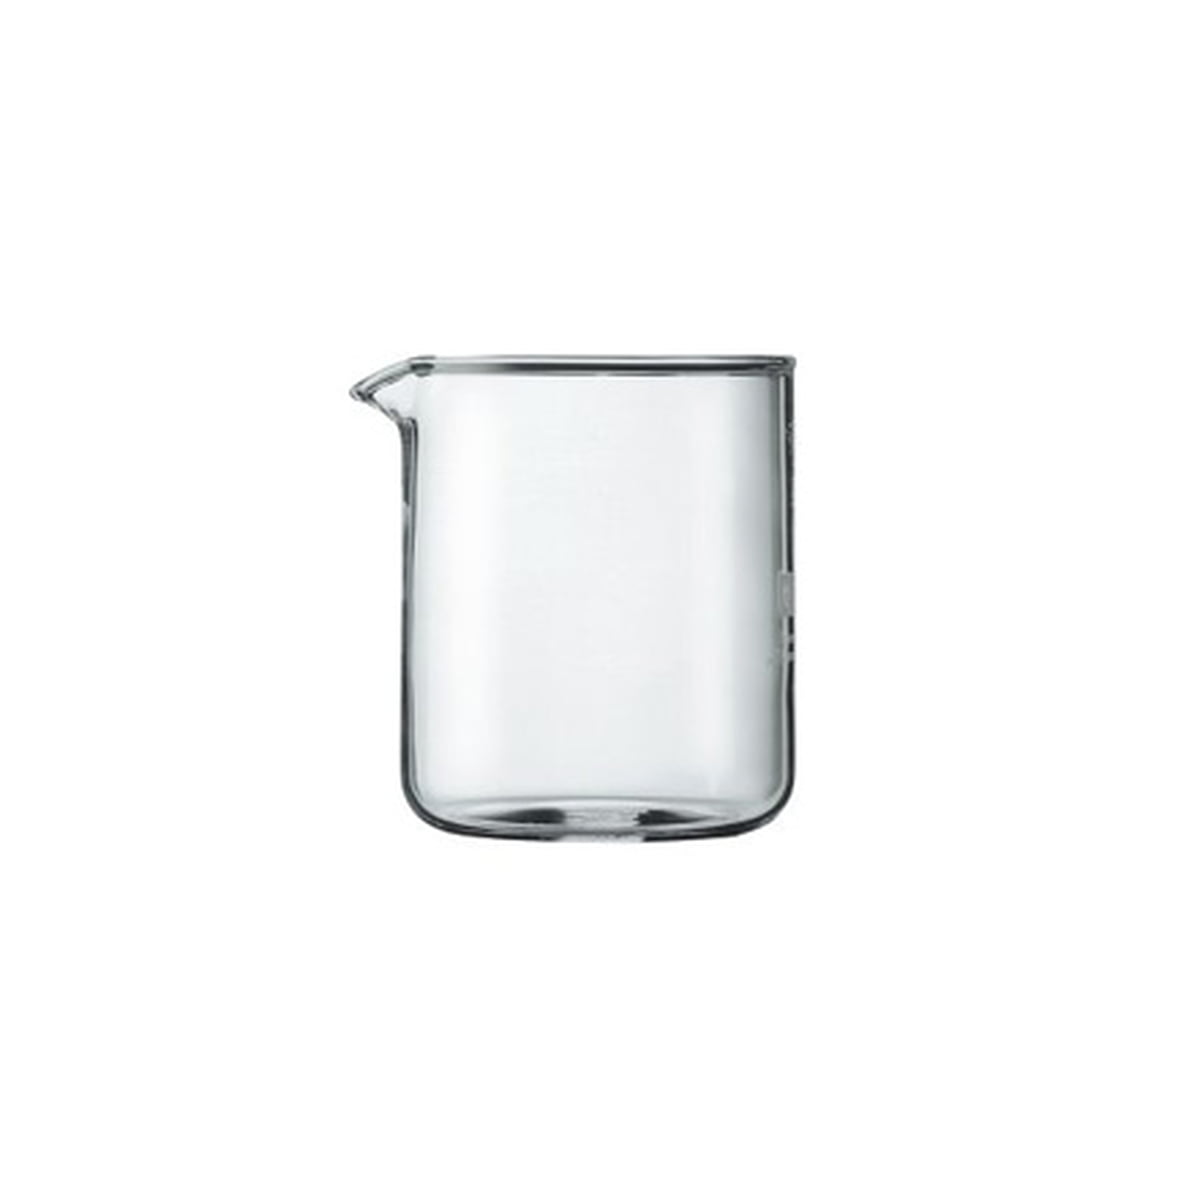 Bodum Replacement Glasses For Coffee Maker 3 Cups